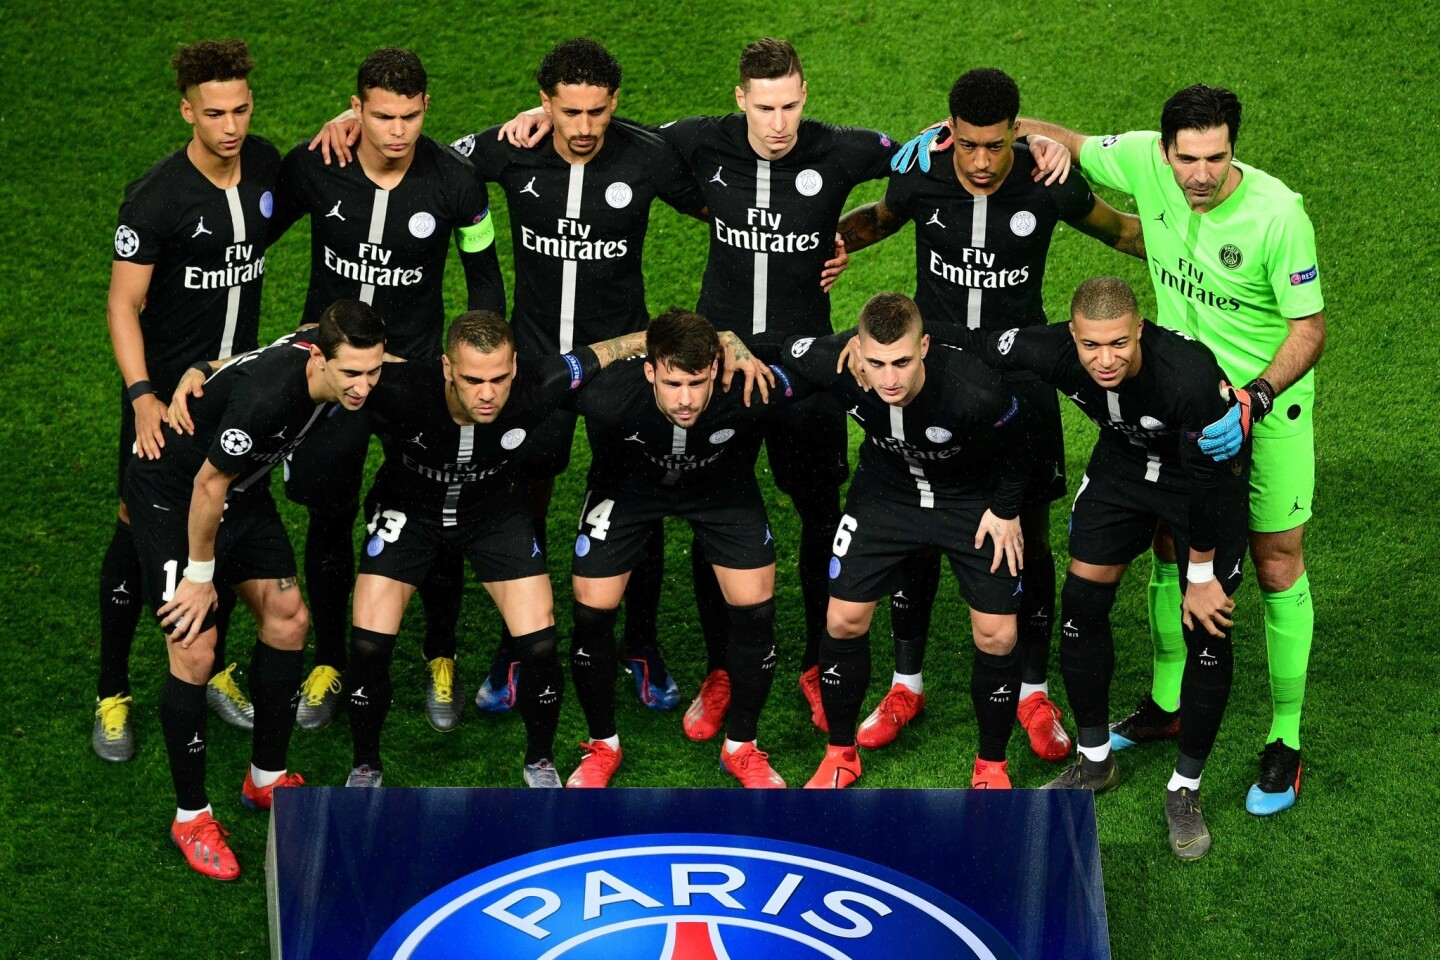 Paris Saint-Germain's players pose for a team picture prior to the UEFA Champions League round of 16 second-leg football match between Paris Saint-Germain (PSG) and Manchester United at the Parc des Princes stadium in Paris on March 6, 2019: (Front row from L to R) Paris Saint-Germain's Argentine midfielder Angel Di Maria, Paris Saint-Germain's Brazilian defender Dani Alves, Paris Saint-Germain's Spanish defender Juan Bernat, Paris Saint-Germain's Italian midfielder Marco Verratti, Paris Saint-Germain's French forward Kylian Mbappe (back row from L to R) Paris Saint-Germain's German defender Thilo Kehrer, Paris Saint-Germain's Brazilian defender Thiago Silva, Paris Saint-Germain's Brazilian defender Marquinhos, Paris Saint-Germain's German midfielder Julian Draxler, Paris Saint-Germain's French defender Presnel Kimpembe and Paris Saint-Germain's Italian goalkeeper Gianluigi Buffon. (Photo by Martin BUREAU / AFP)MARTIN BUREAU/AFP/Getty Images ** OUTS - ELSENT, FPG, CM - OUTS * NM, PH, VA if sourced by CT, LA or MoD **